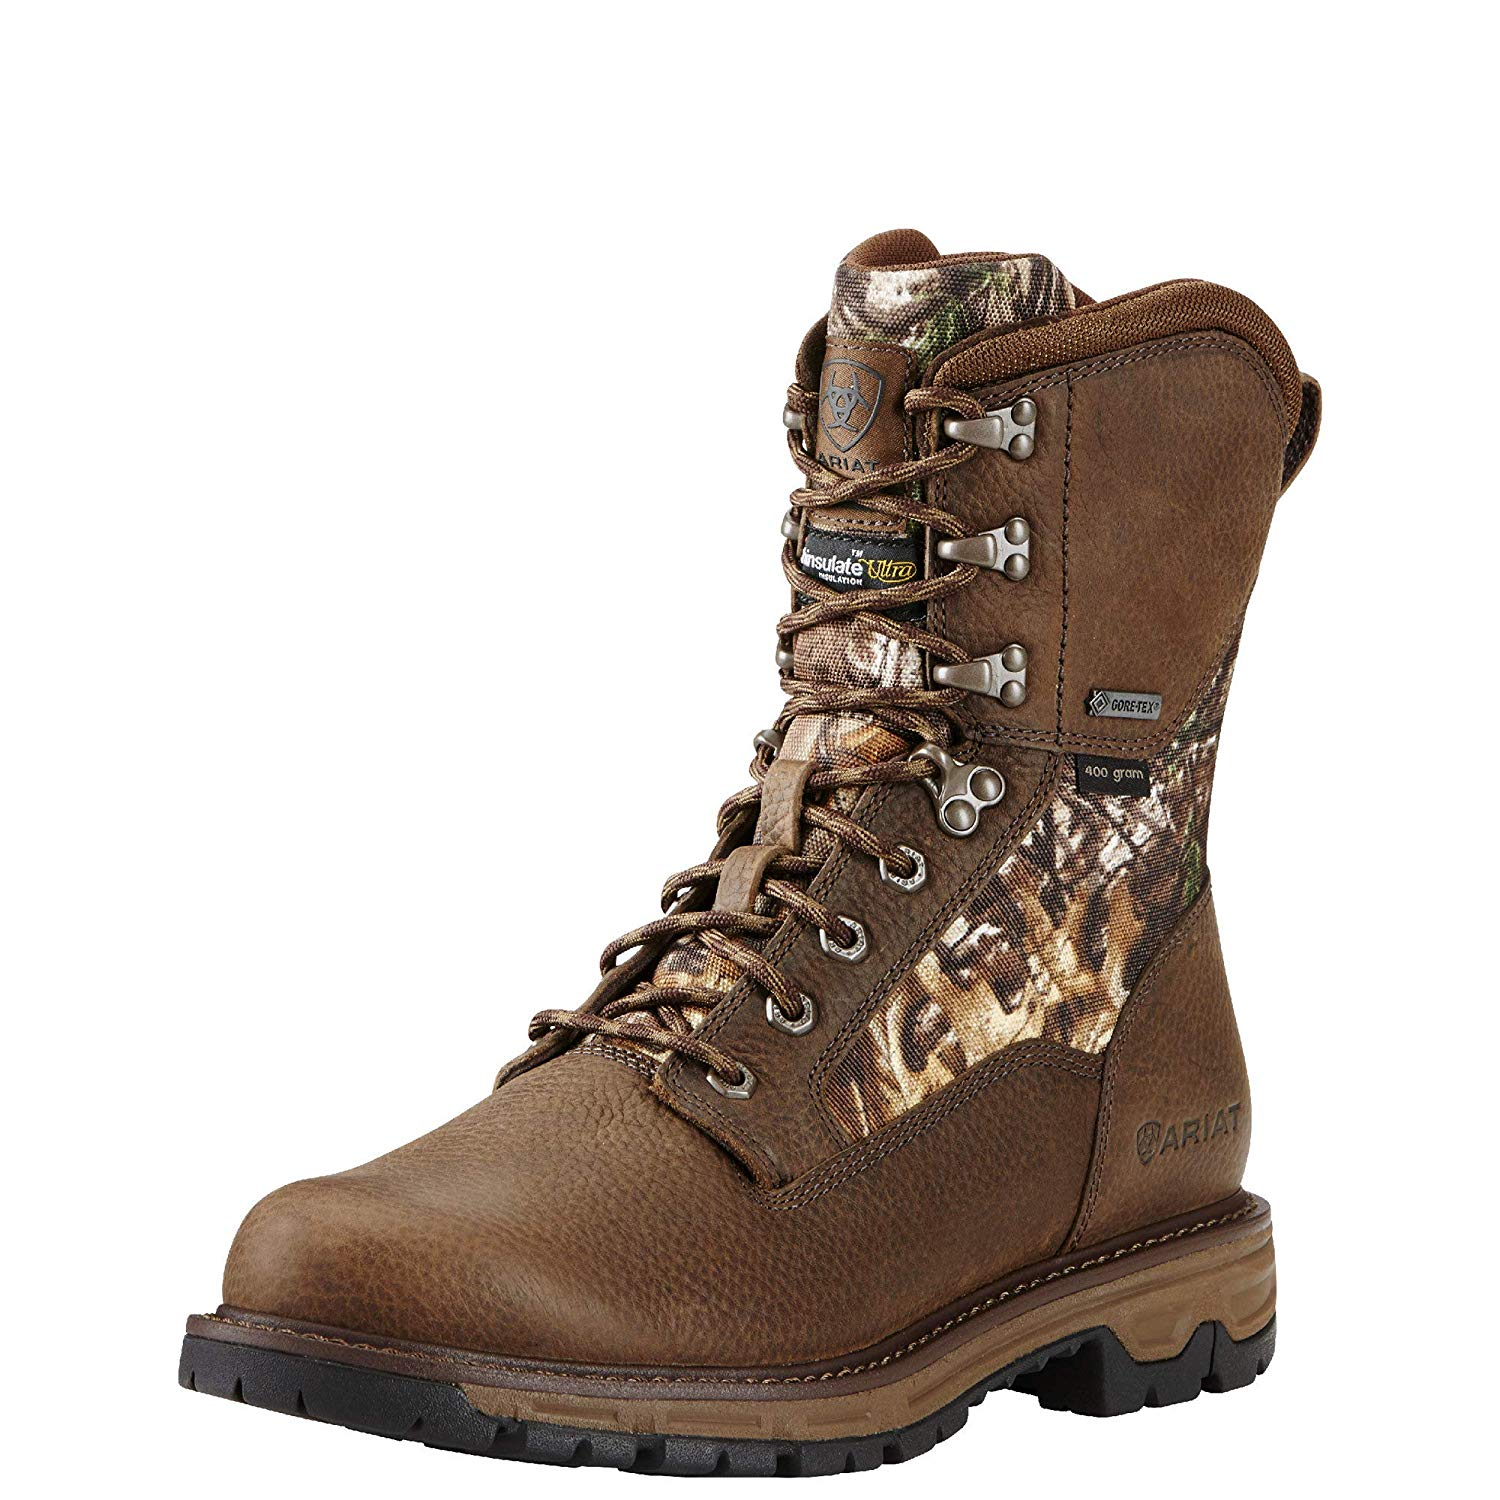 Ariat men's Conquest hunting boots